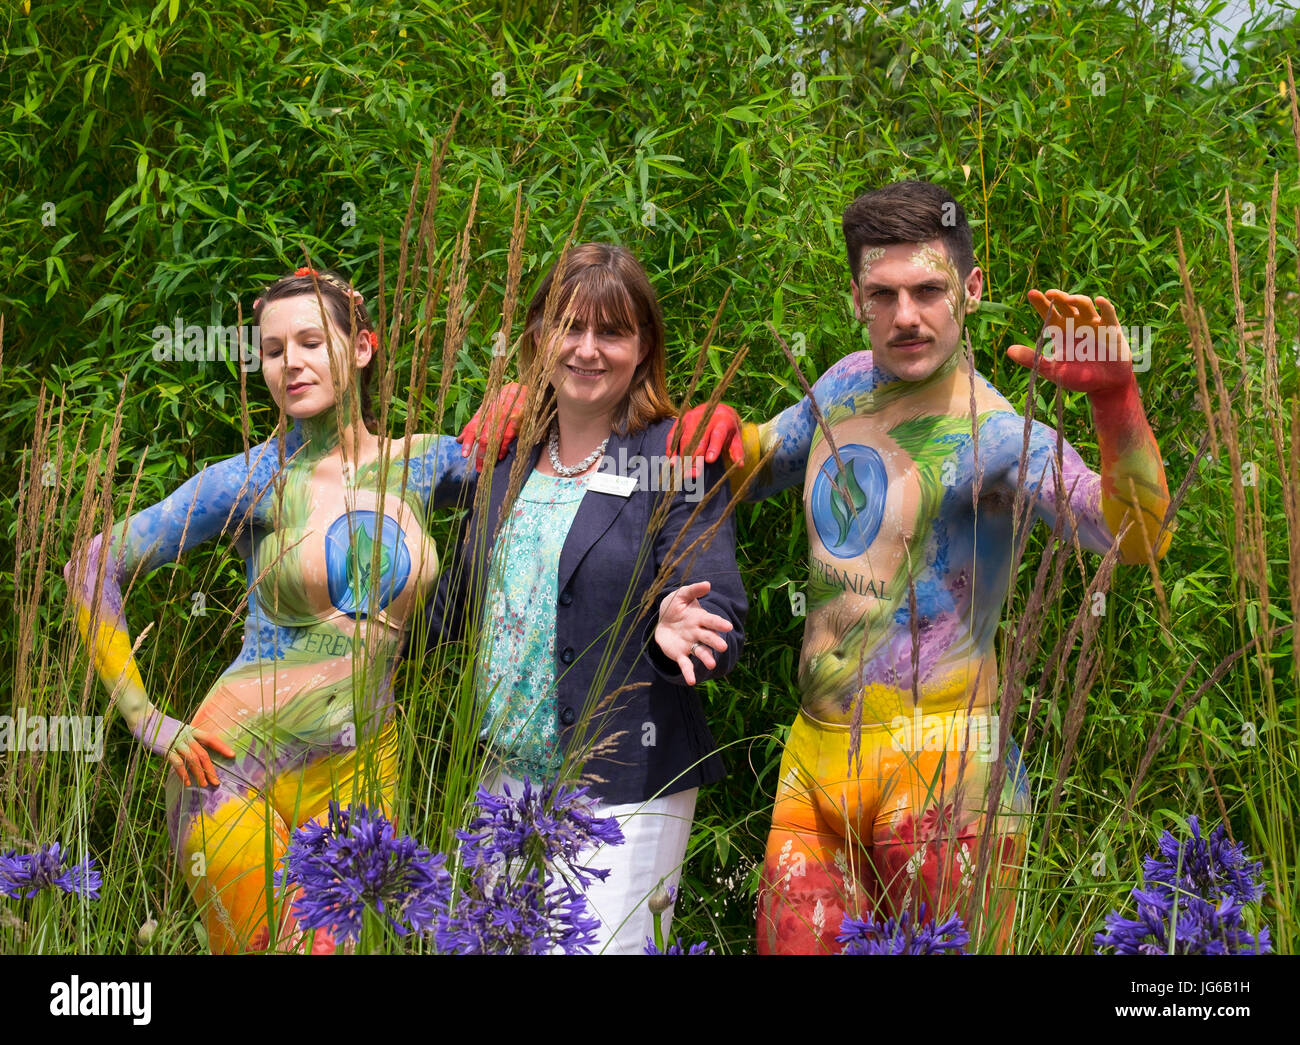 3rd July, 2017. RHS Hampton Court Palace Flower Show. Painted male and female models in The Perennial Sanctuary - Stock Image